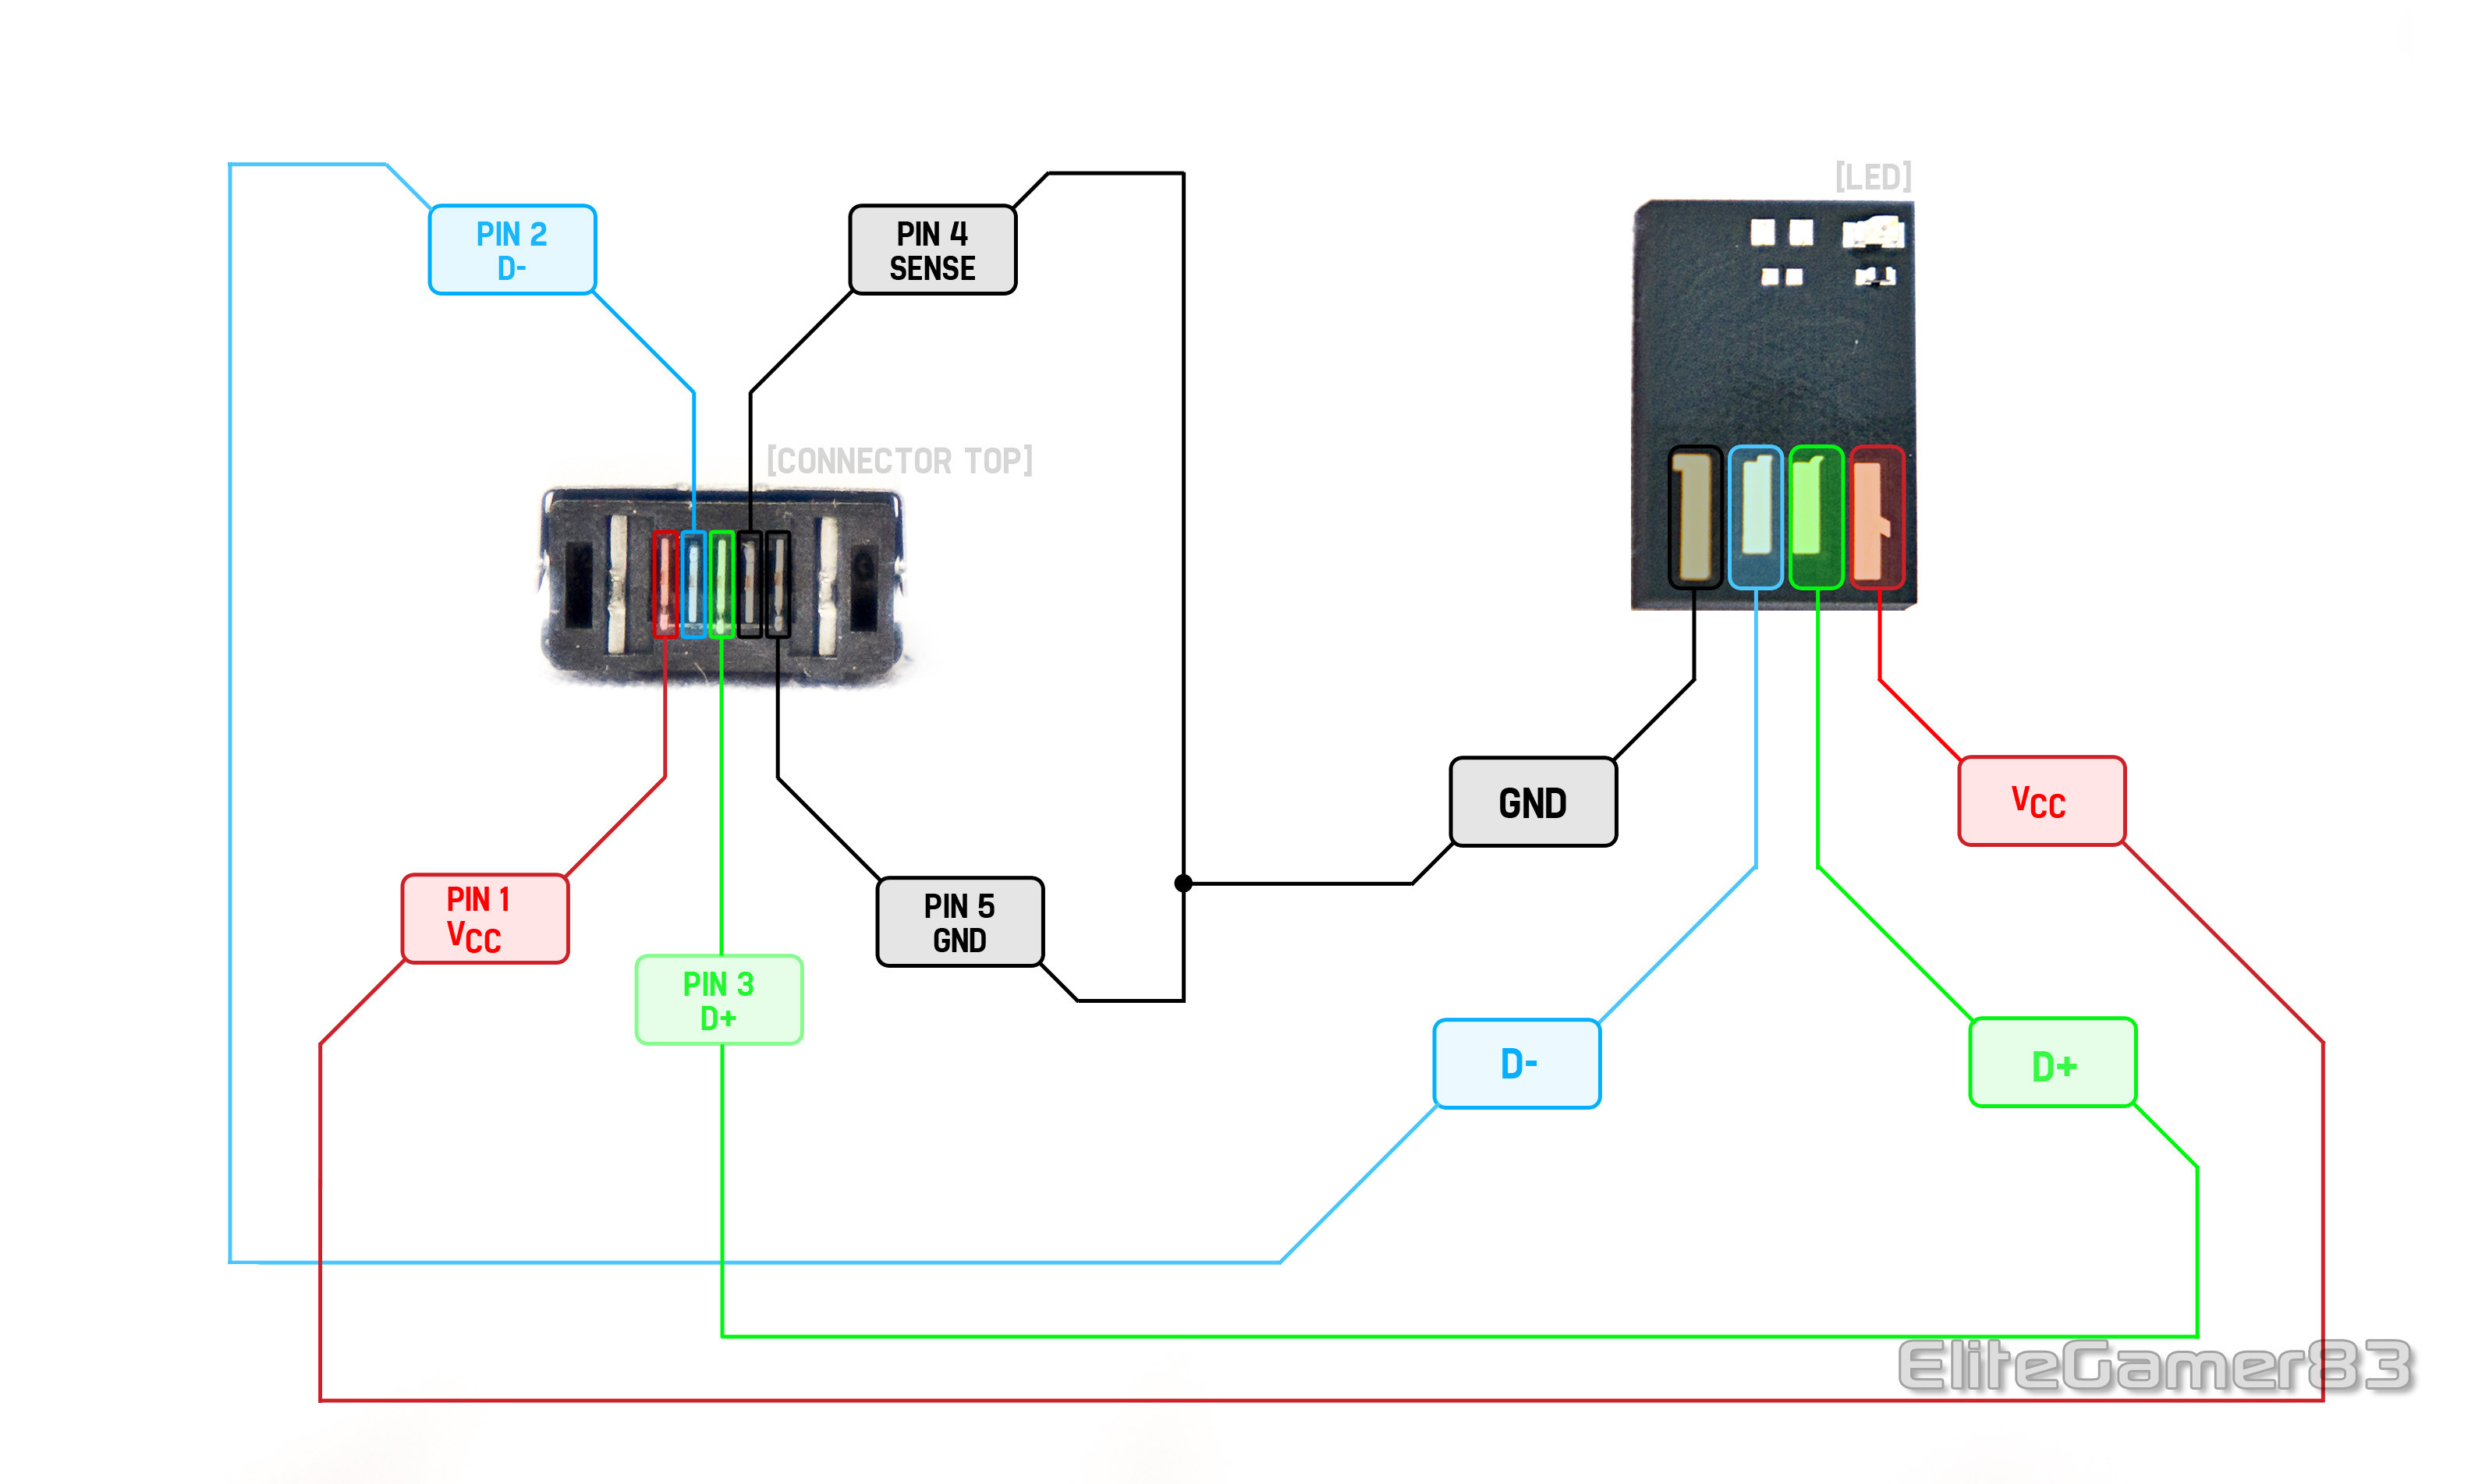 Micro Usb Cable Wiring Diagram To Rs232 | Wiring Library - Wiring Diagram Usb Cable To Dc